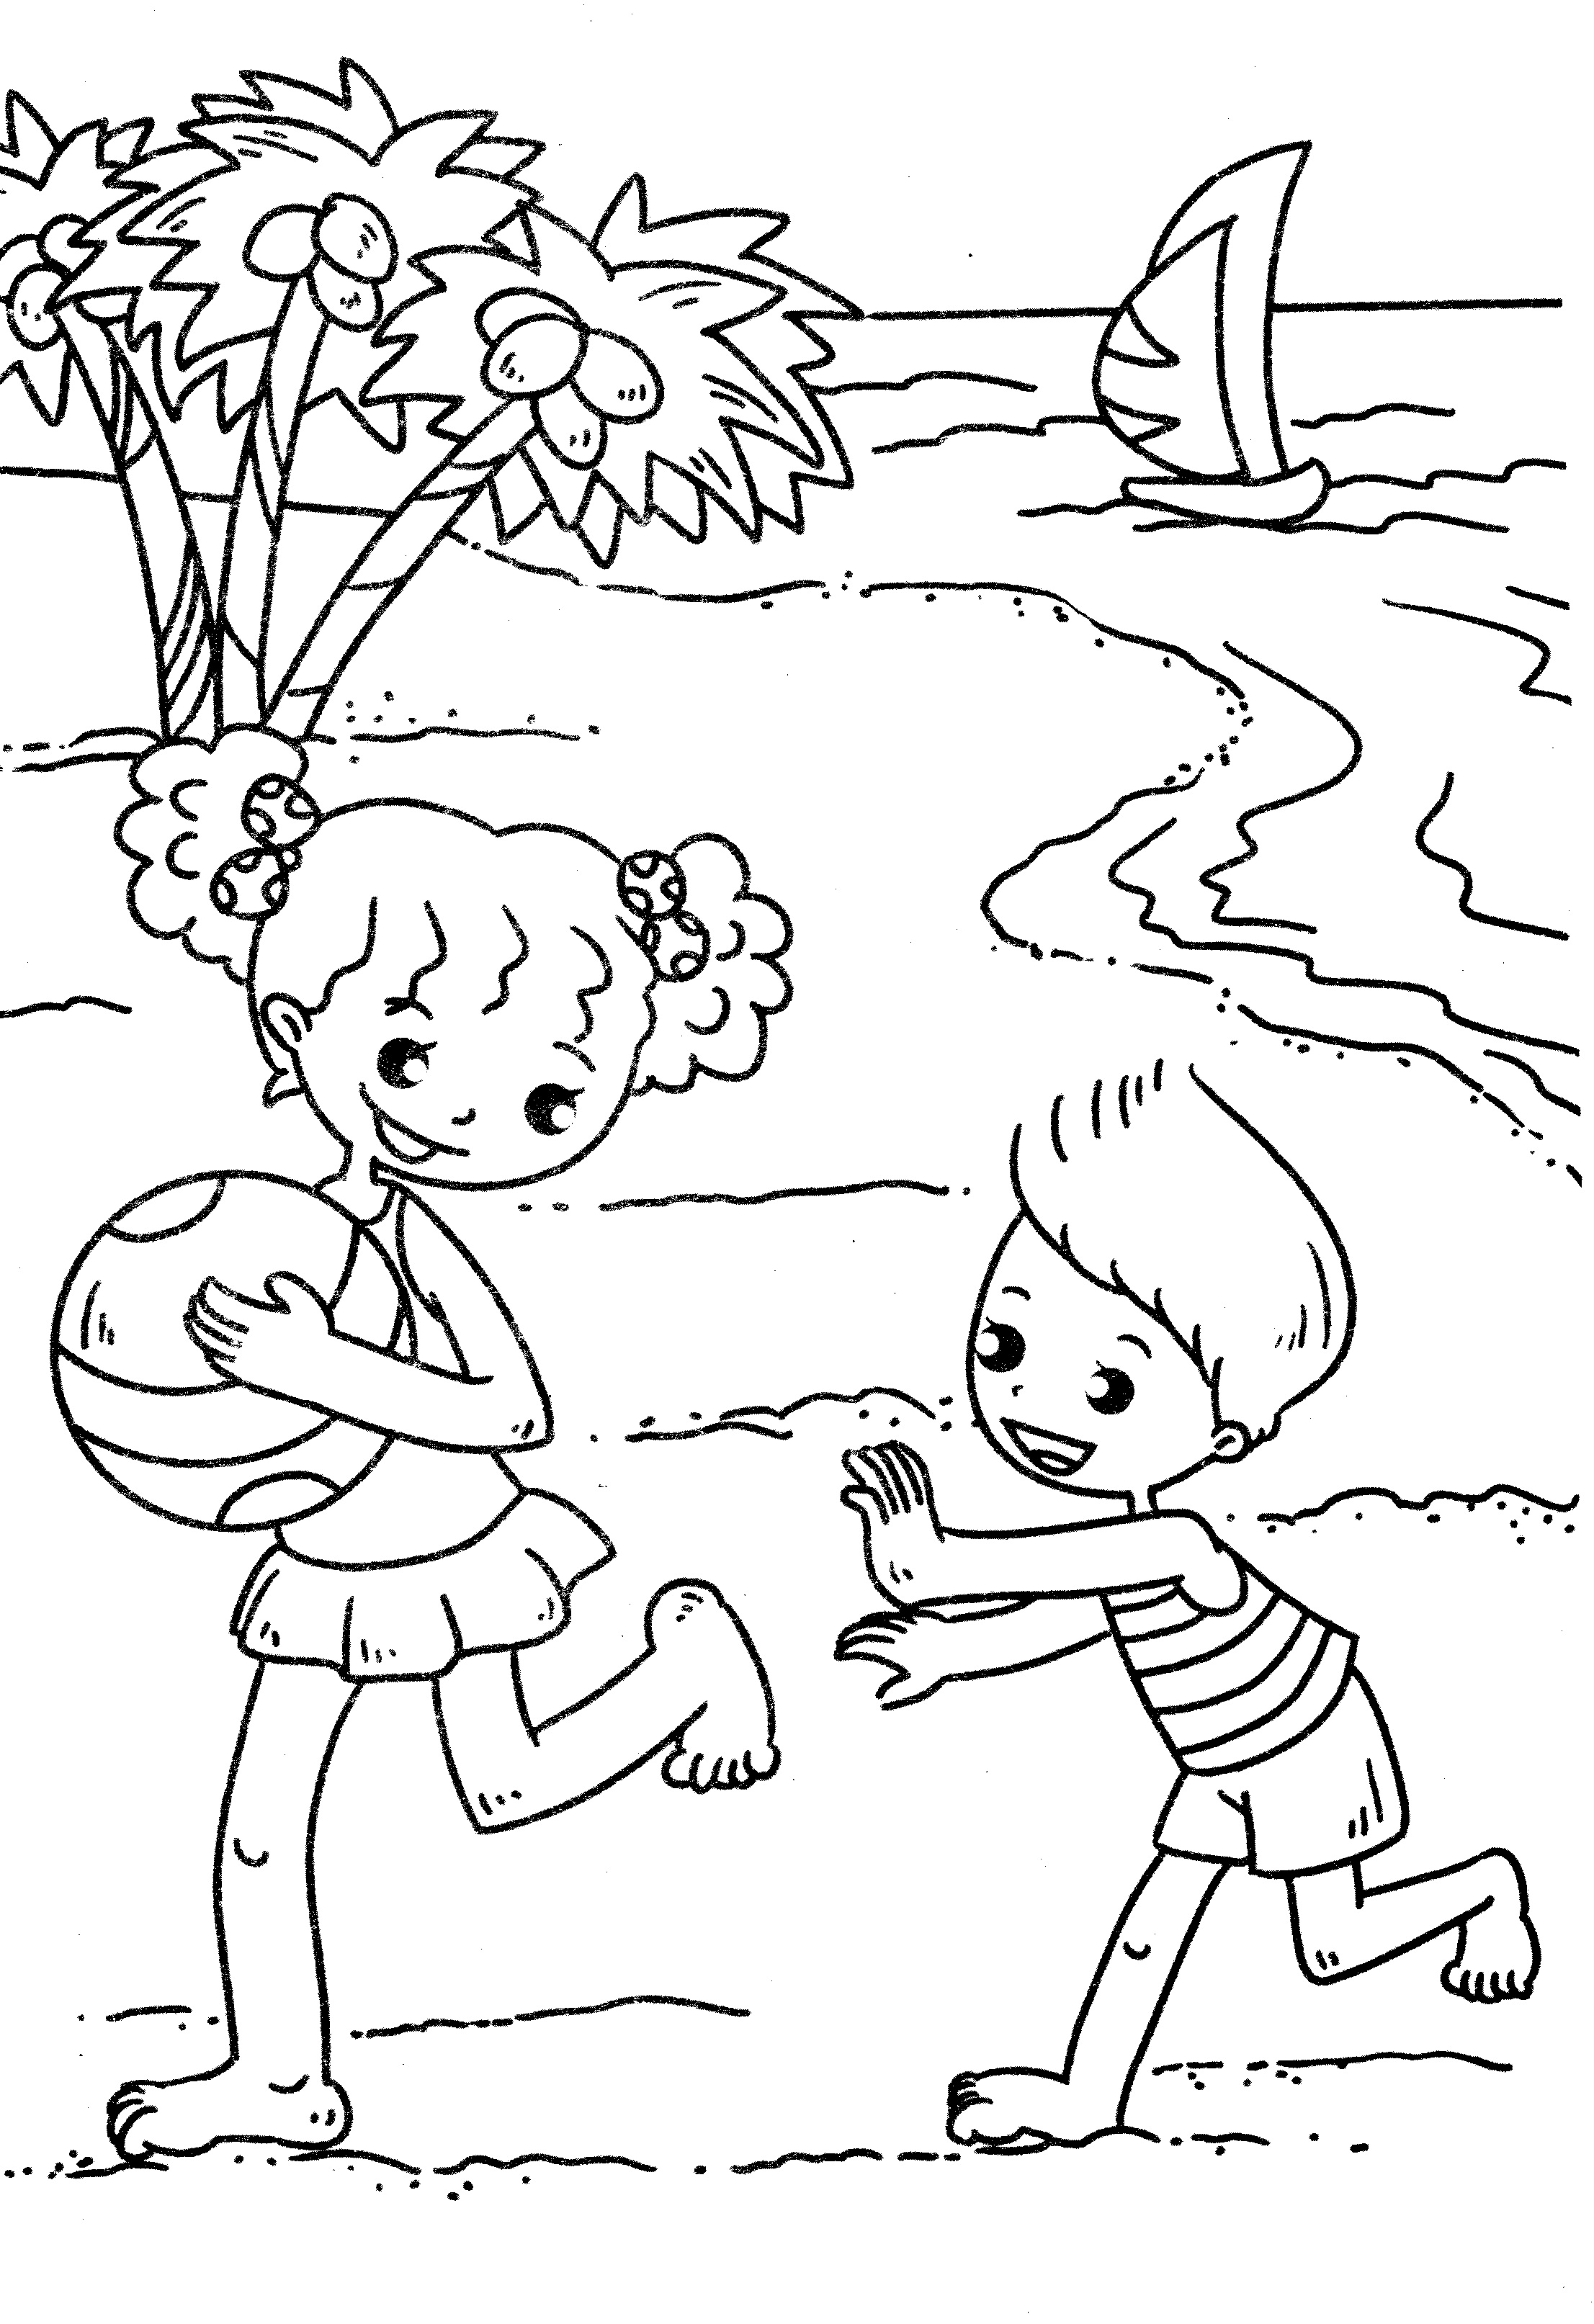 free online beach coloring pages - photo#21